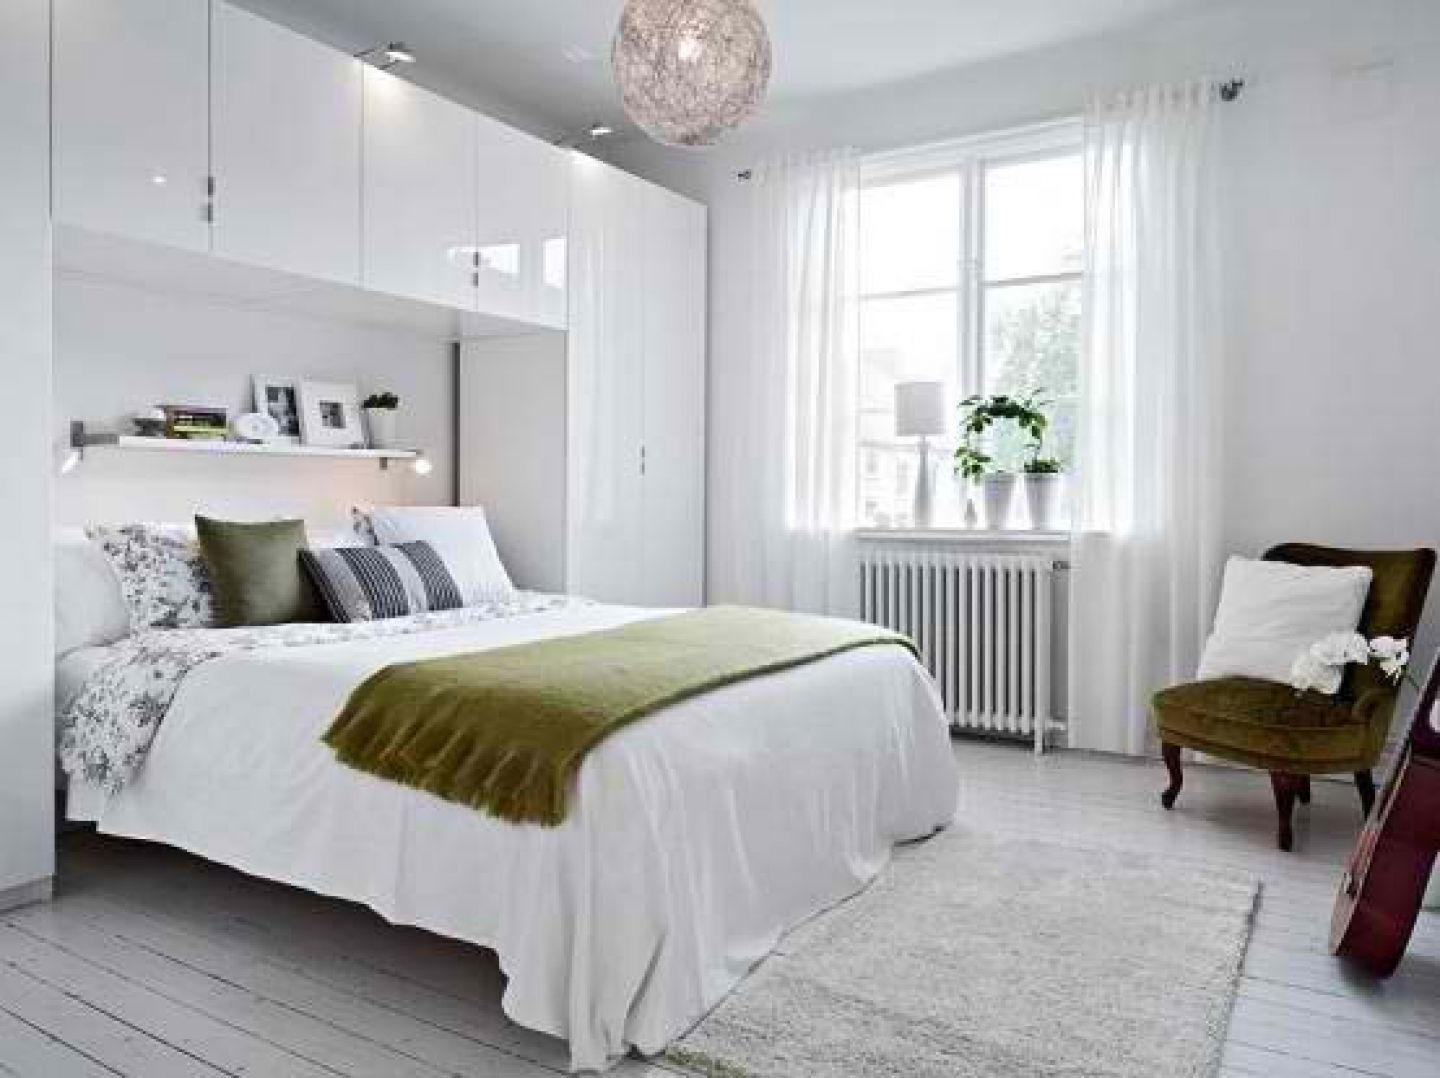 30 home decorating ideas for small apartments - Small Apartment Bedroom Decorating Ideas